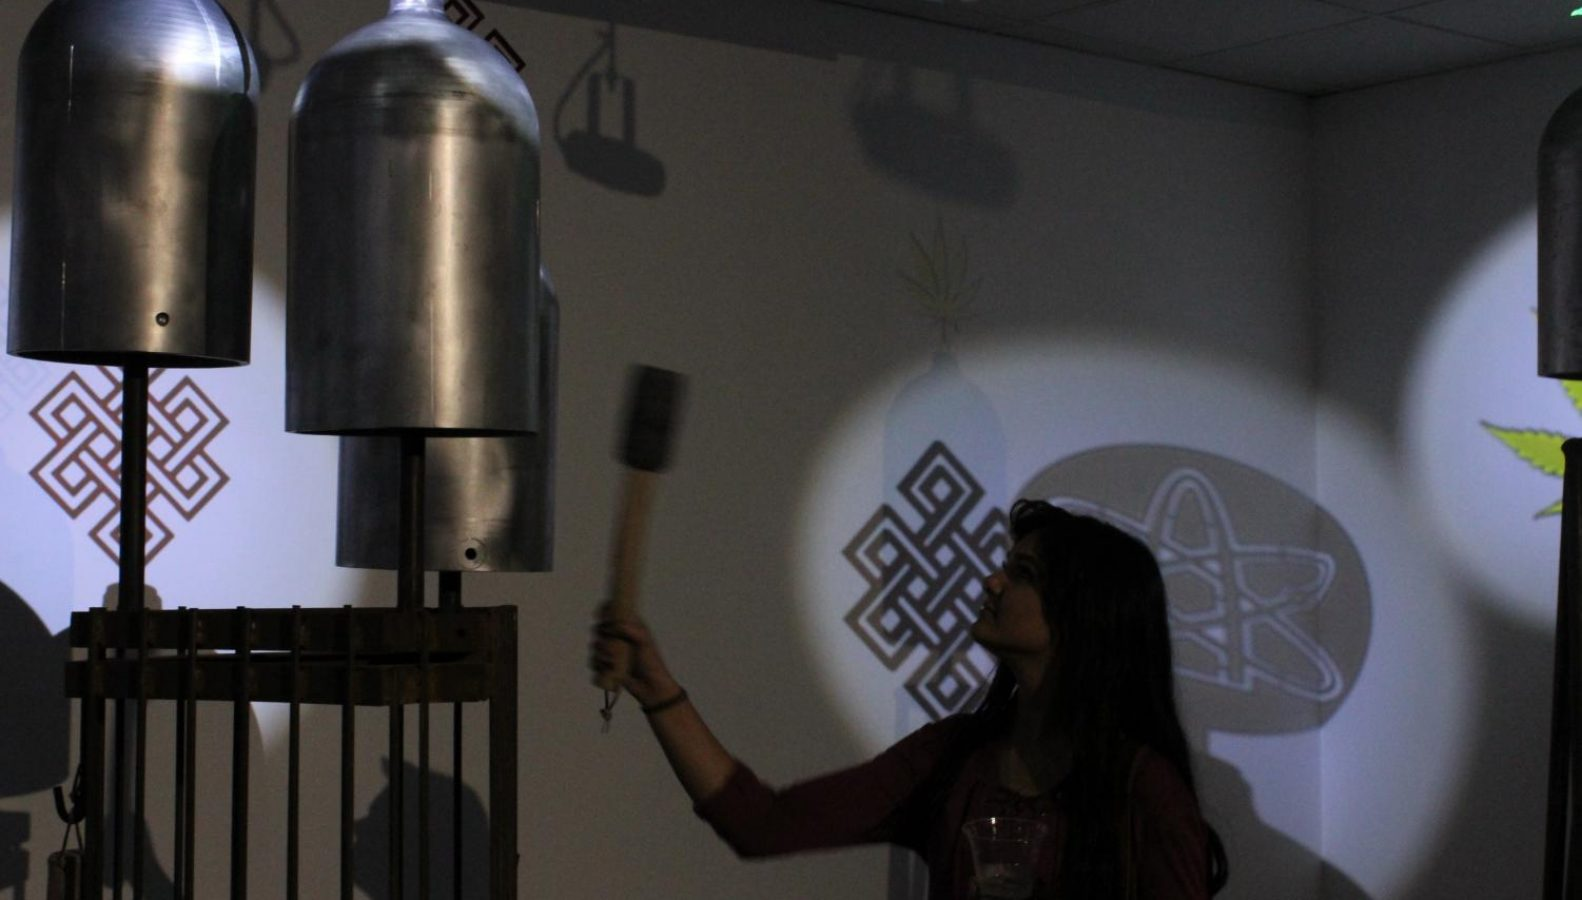 Biochemistry major Meriam Sadat rings one of the bells made from salvaged propane tanks in the exhibit. The bells have a deep and penetrating sound that sent vibrations outward with a meditative hum.  Photo by Nick Minges – The State Hornet